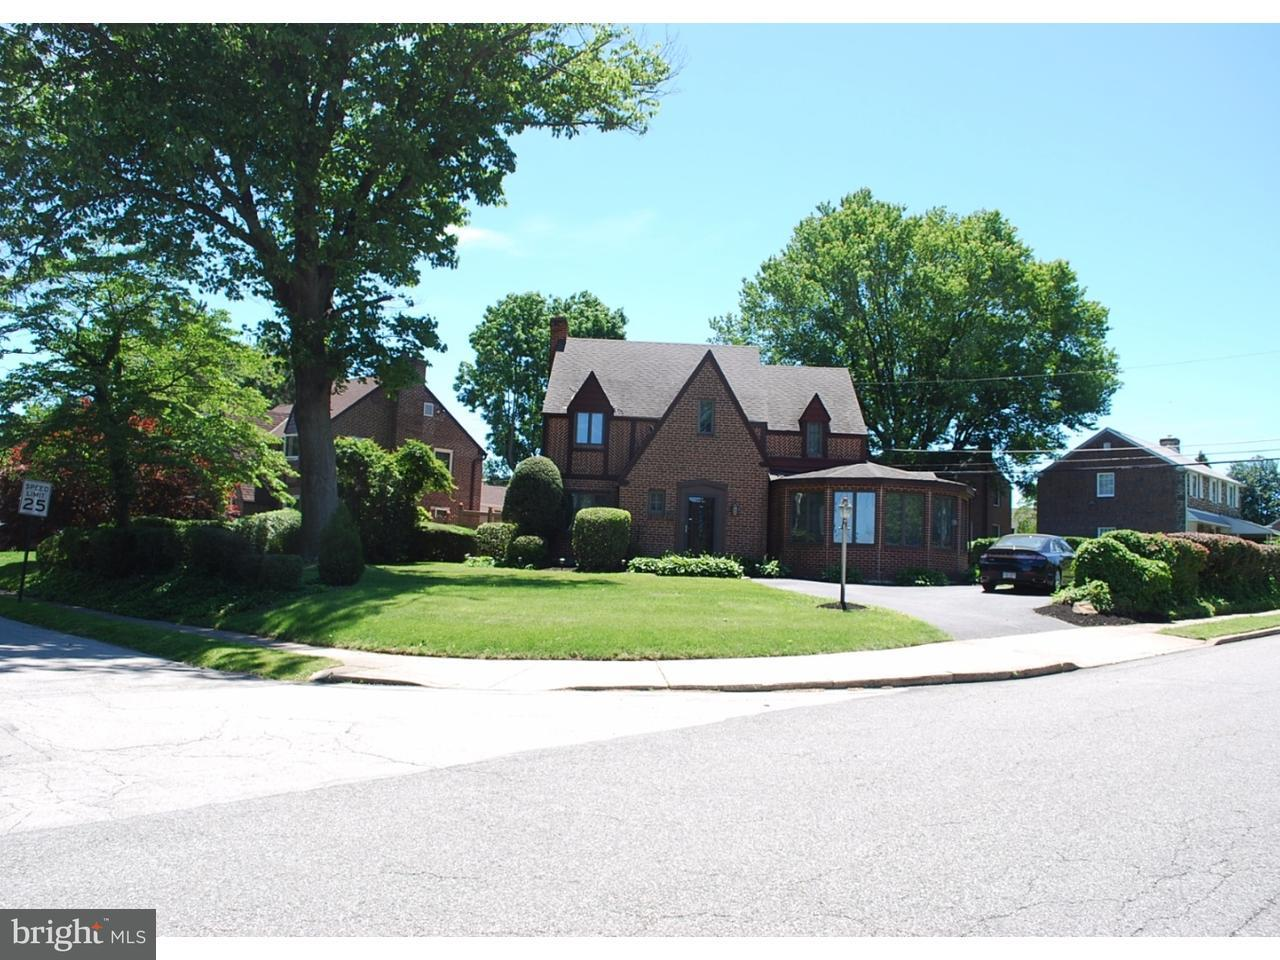 Single Family Home for Sale at 176 FRIENDSHIP Road Drexel Hill, Pennsylvania 19026 United States